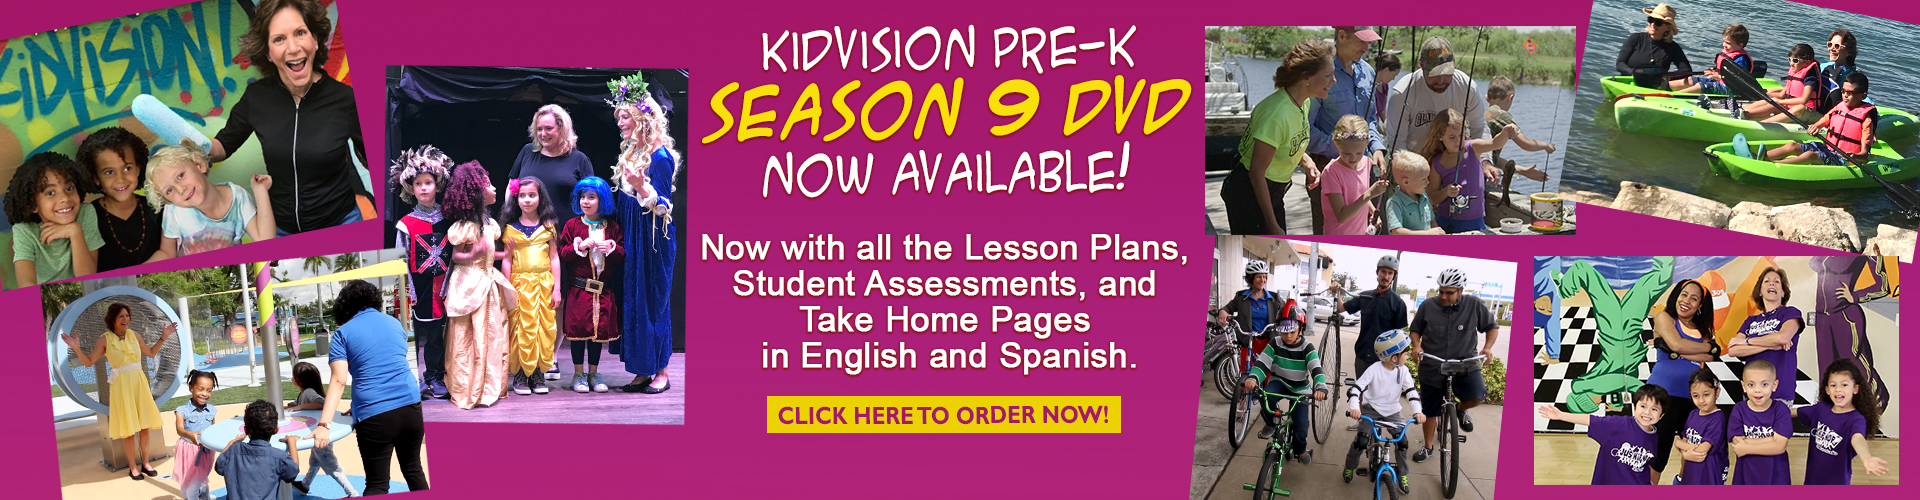 Welcome to KidVision PreK - Learn and Teach Standards for